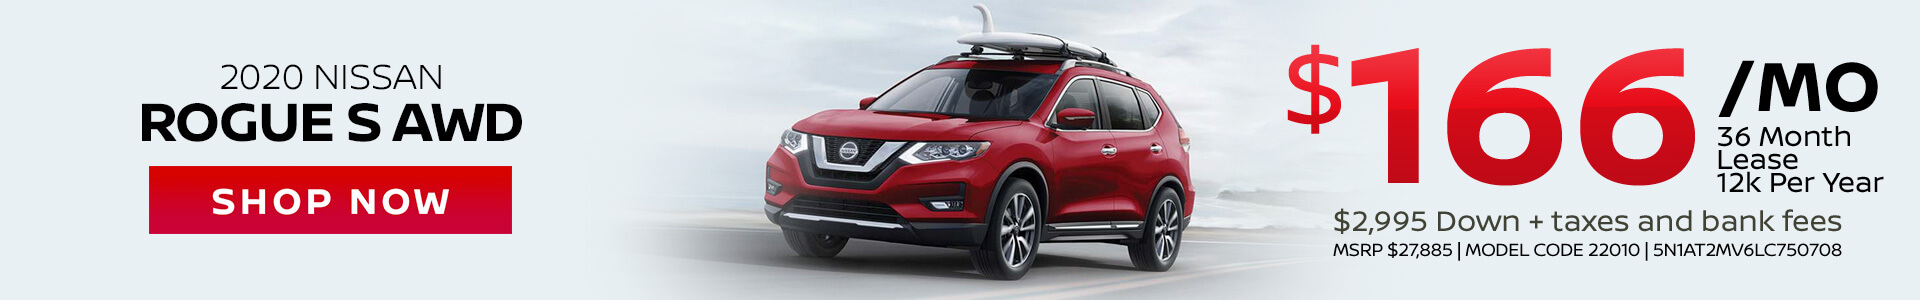 Nissan Rogue $166 Lease